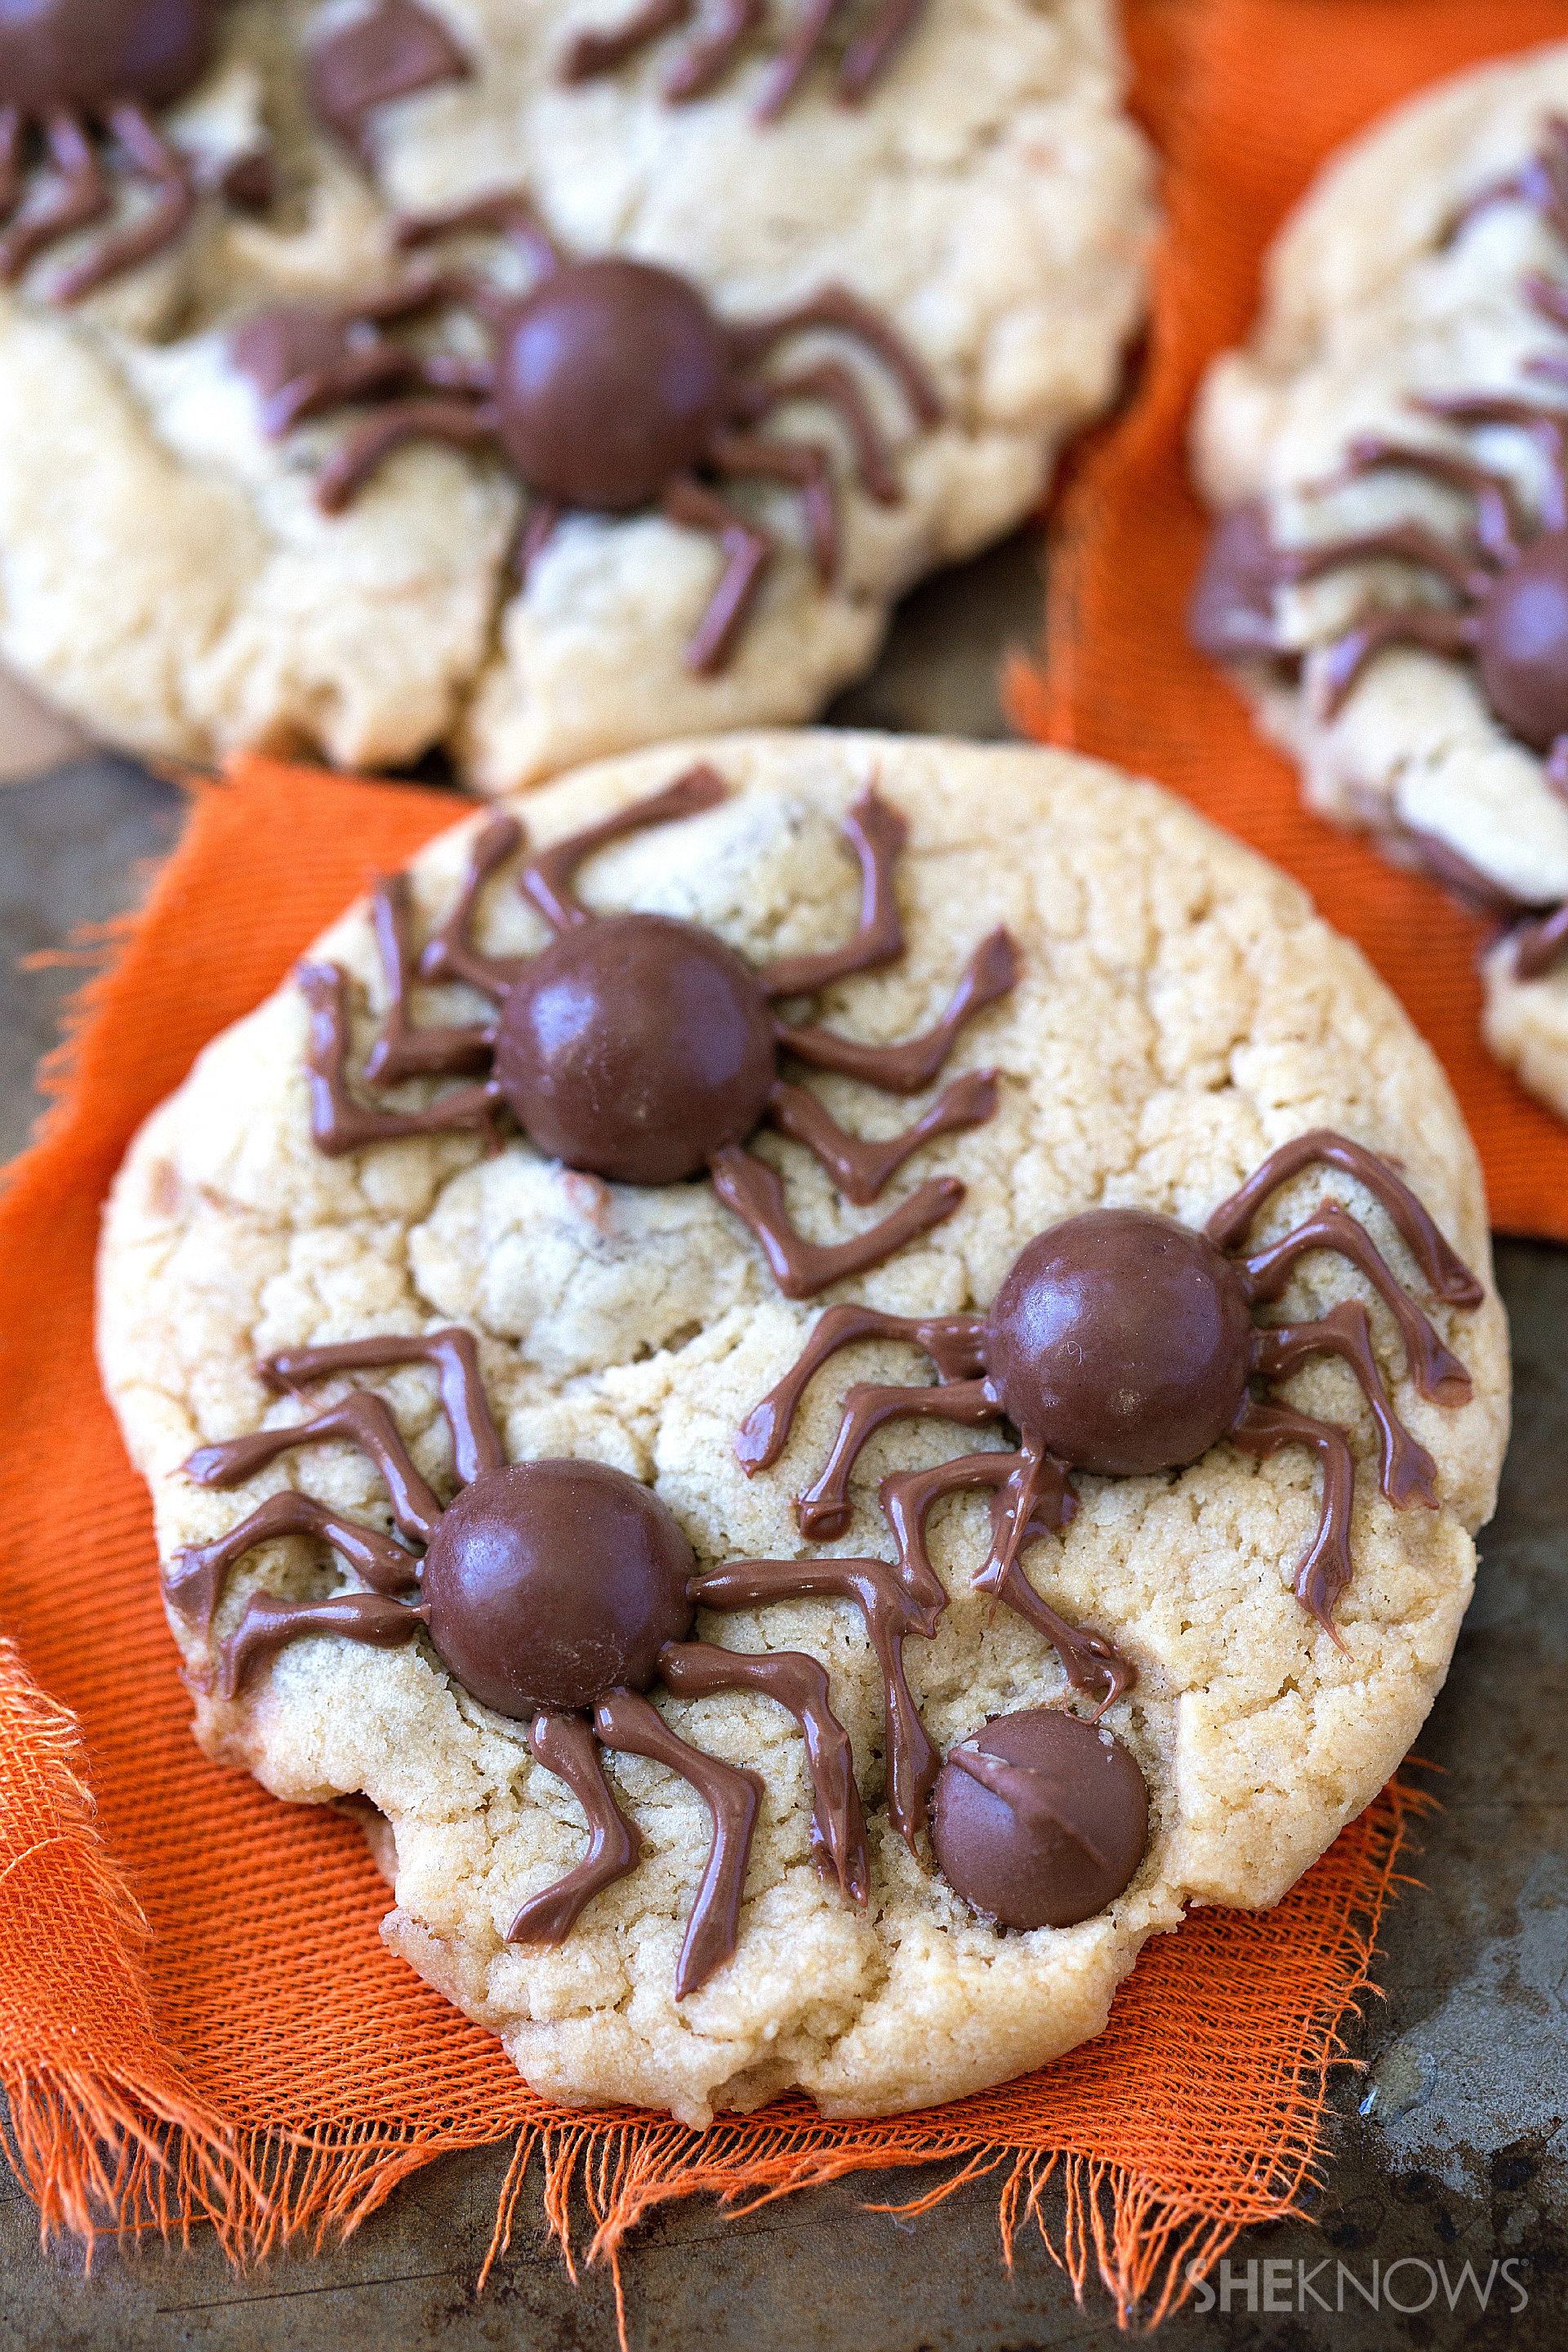 hope you enjoy these spooky spider cookies as much as my family did.